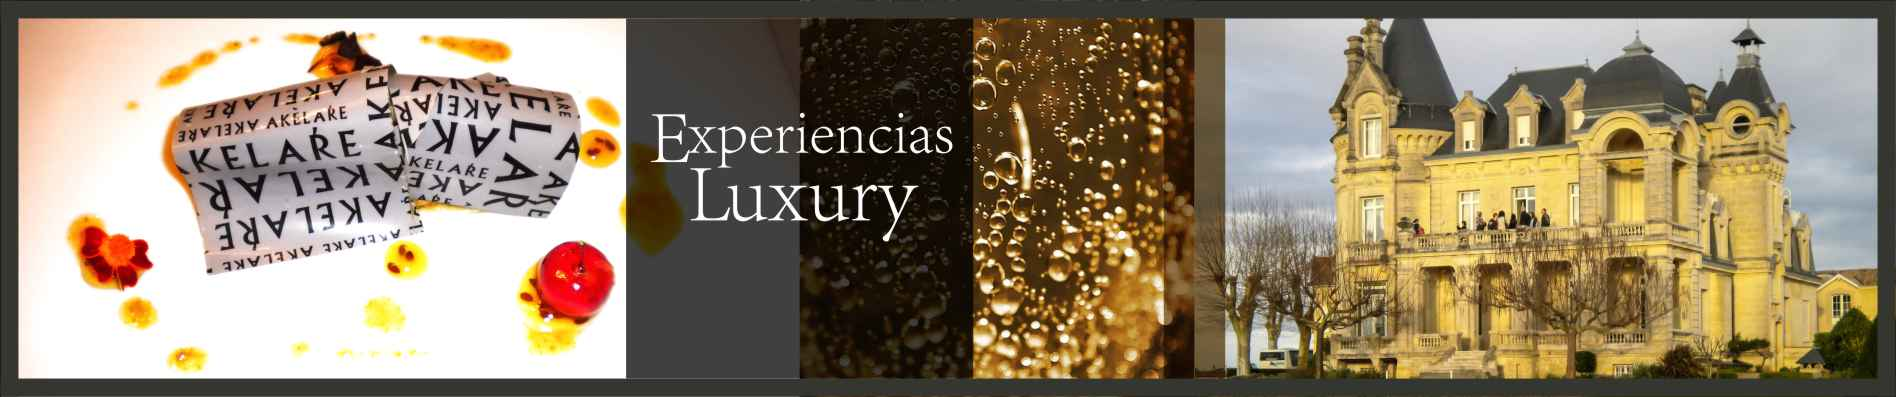 Experiencias luxury